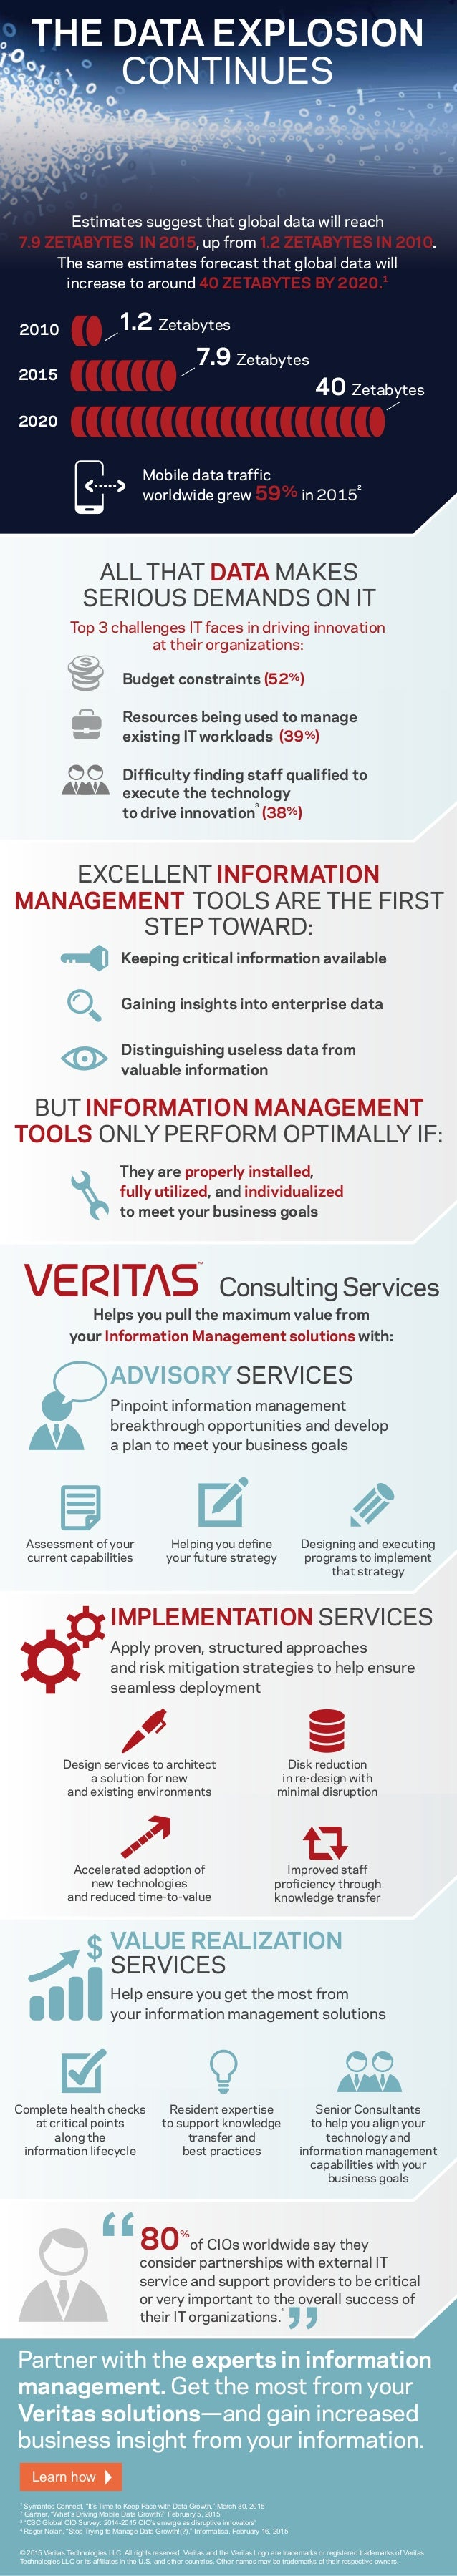 ALL THAT DATA MAKES SERIOUS DEMANDS ON IT EXCELLENT INFORMATION MANAGEMENT TOOLS ARE THE FIRST STEP TOWARD: BUT INFORMATIO...